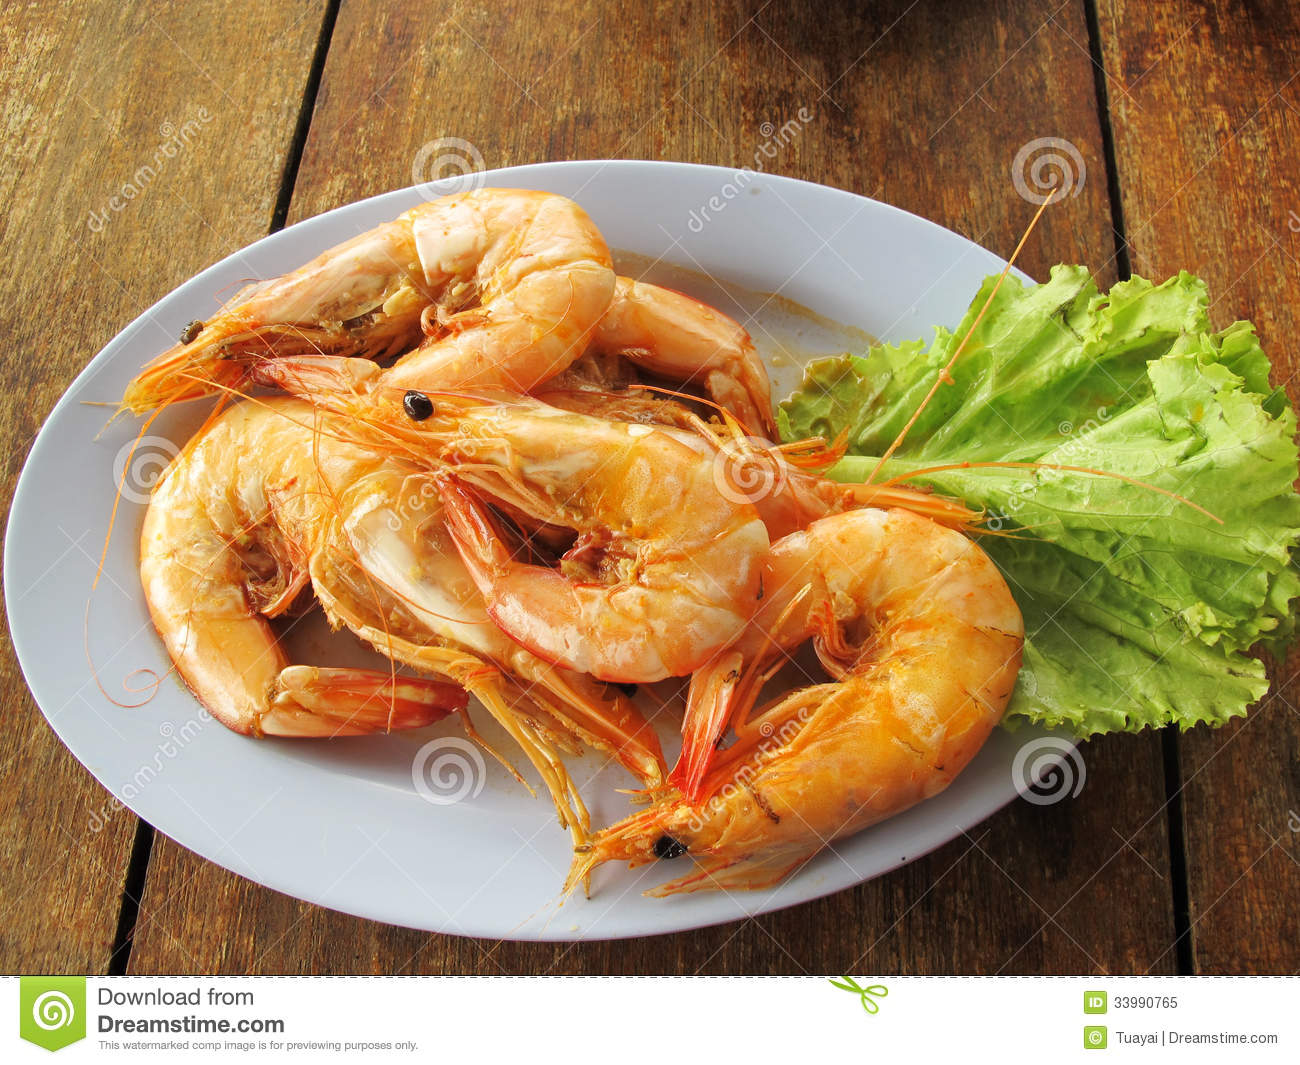 Steamed shrimp royalty free stock photo image 33990765 for Fish as food